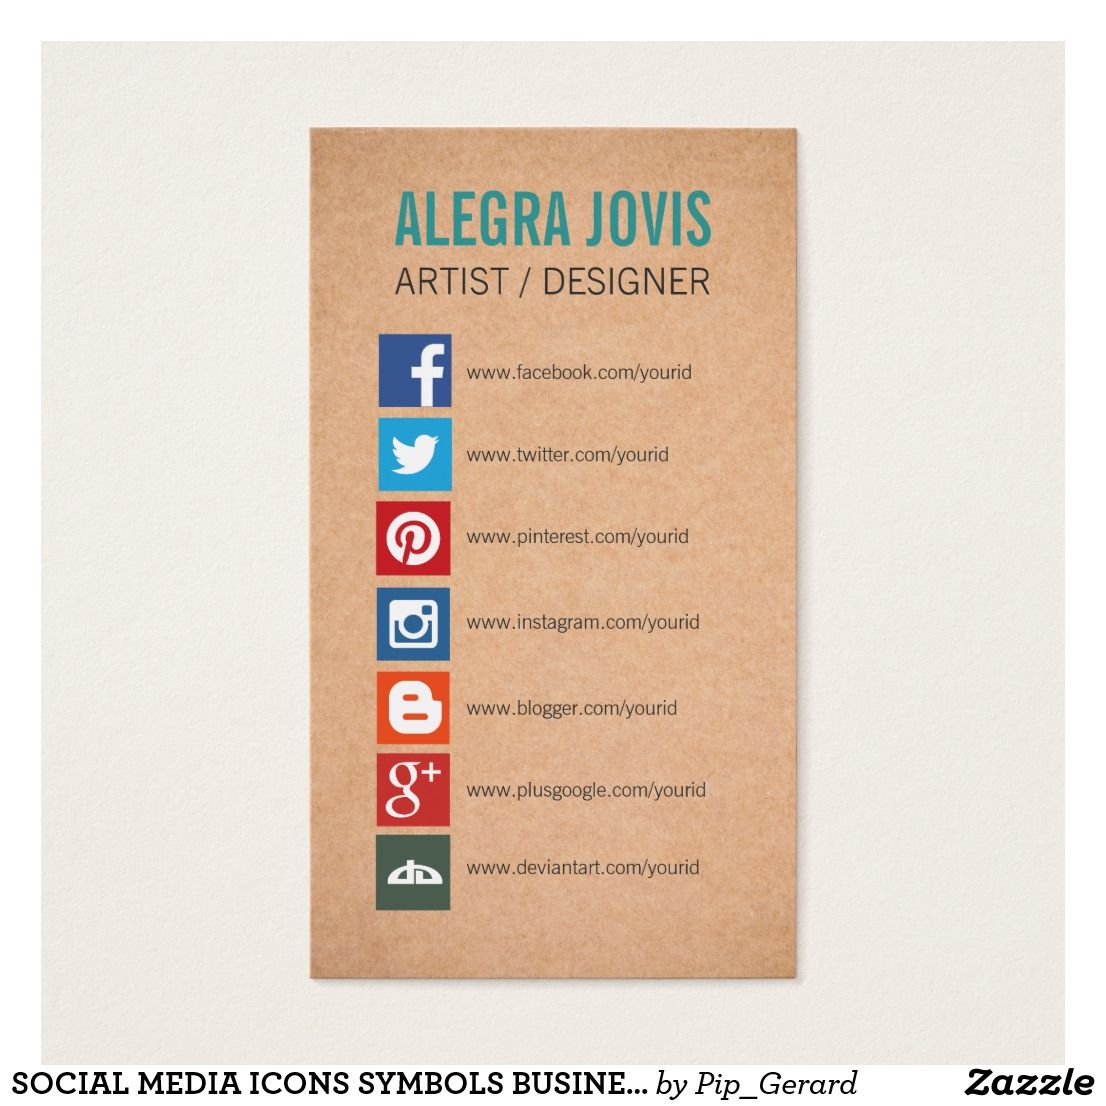 Social media icons symbols business card business cards social social media icons symbols business card magicingreecefo Image collections